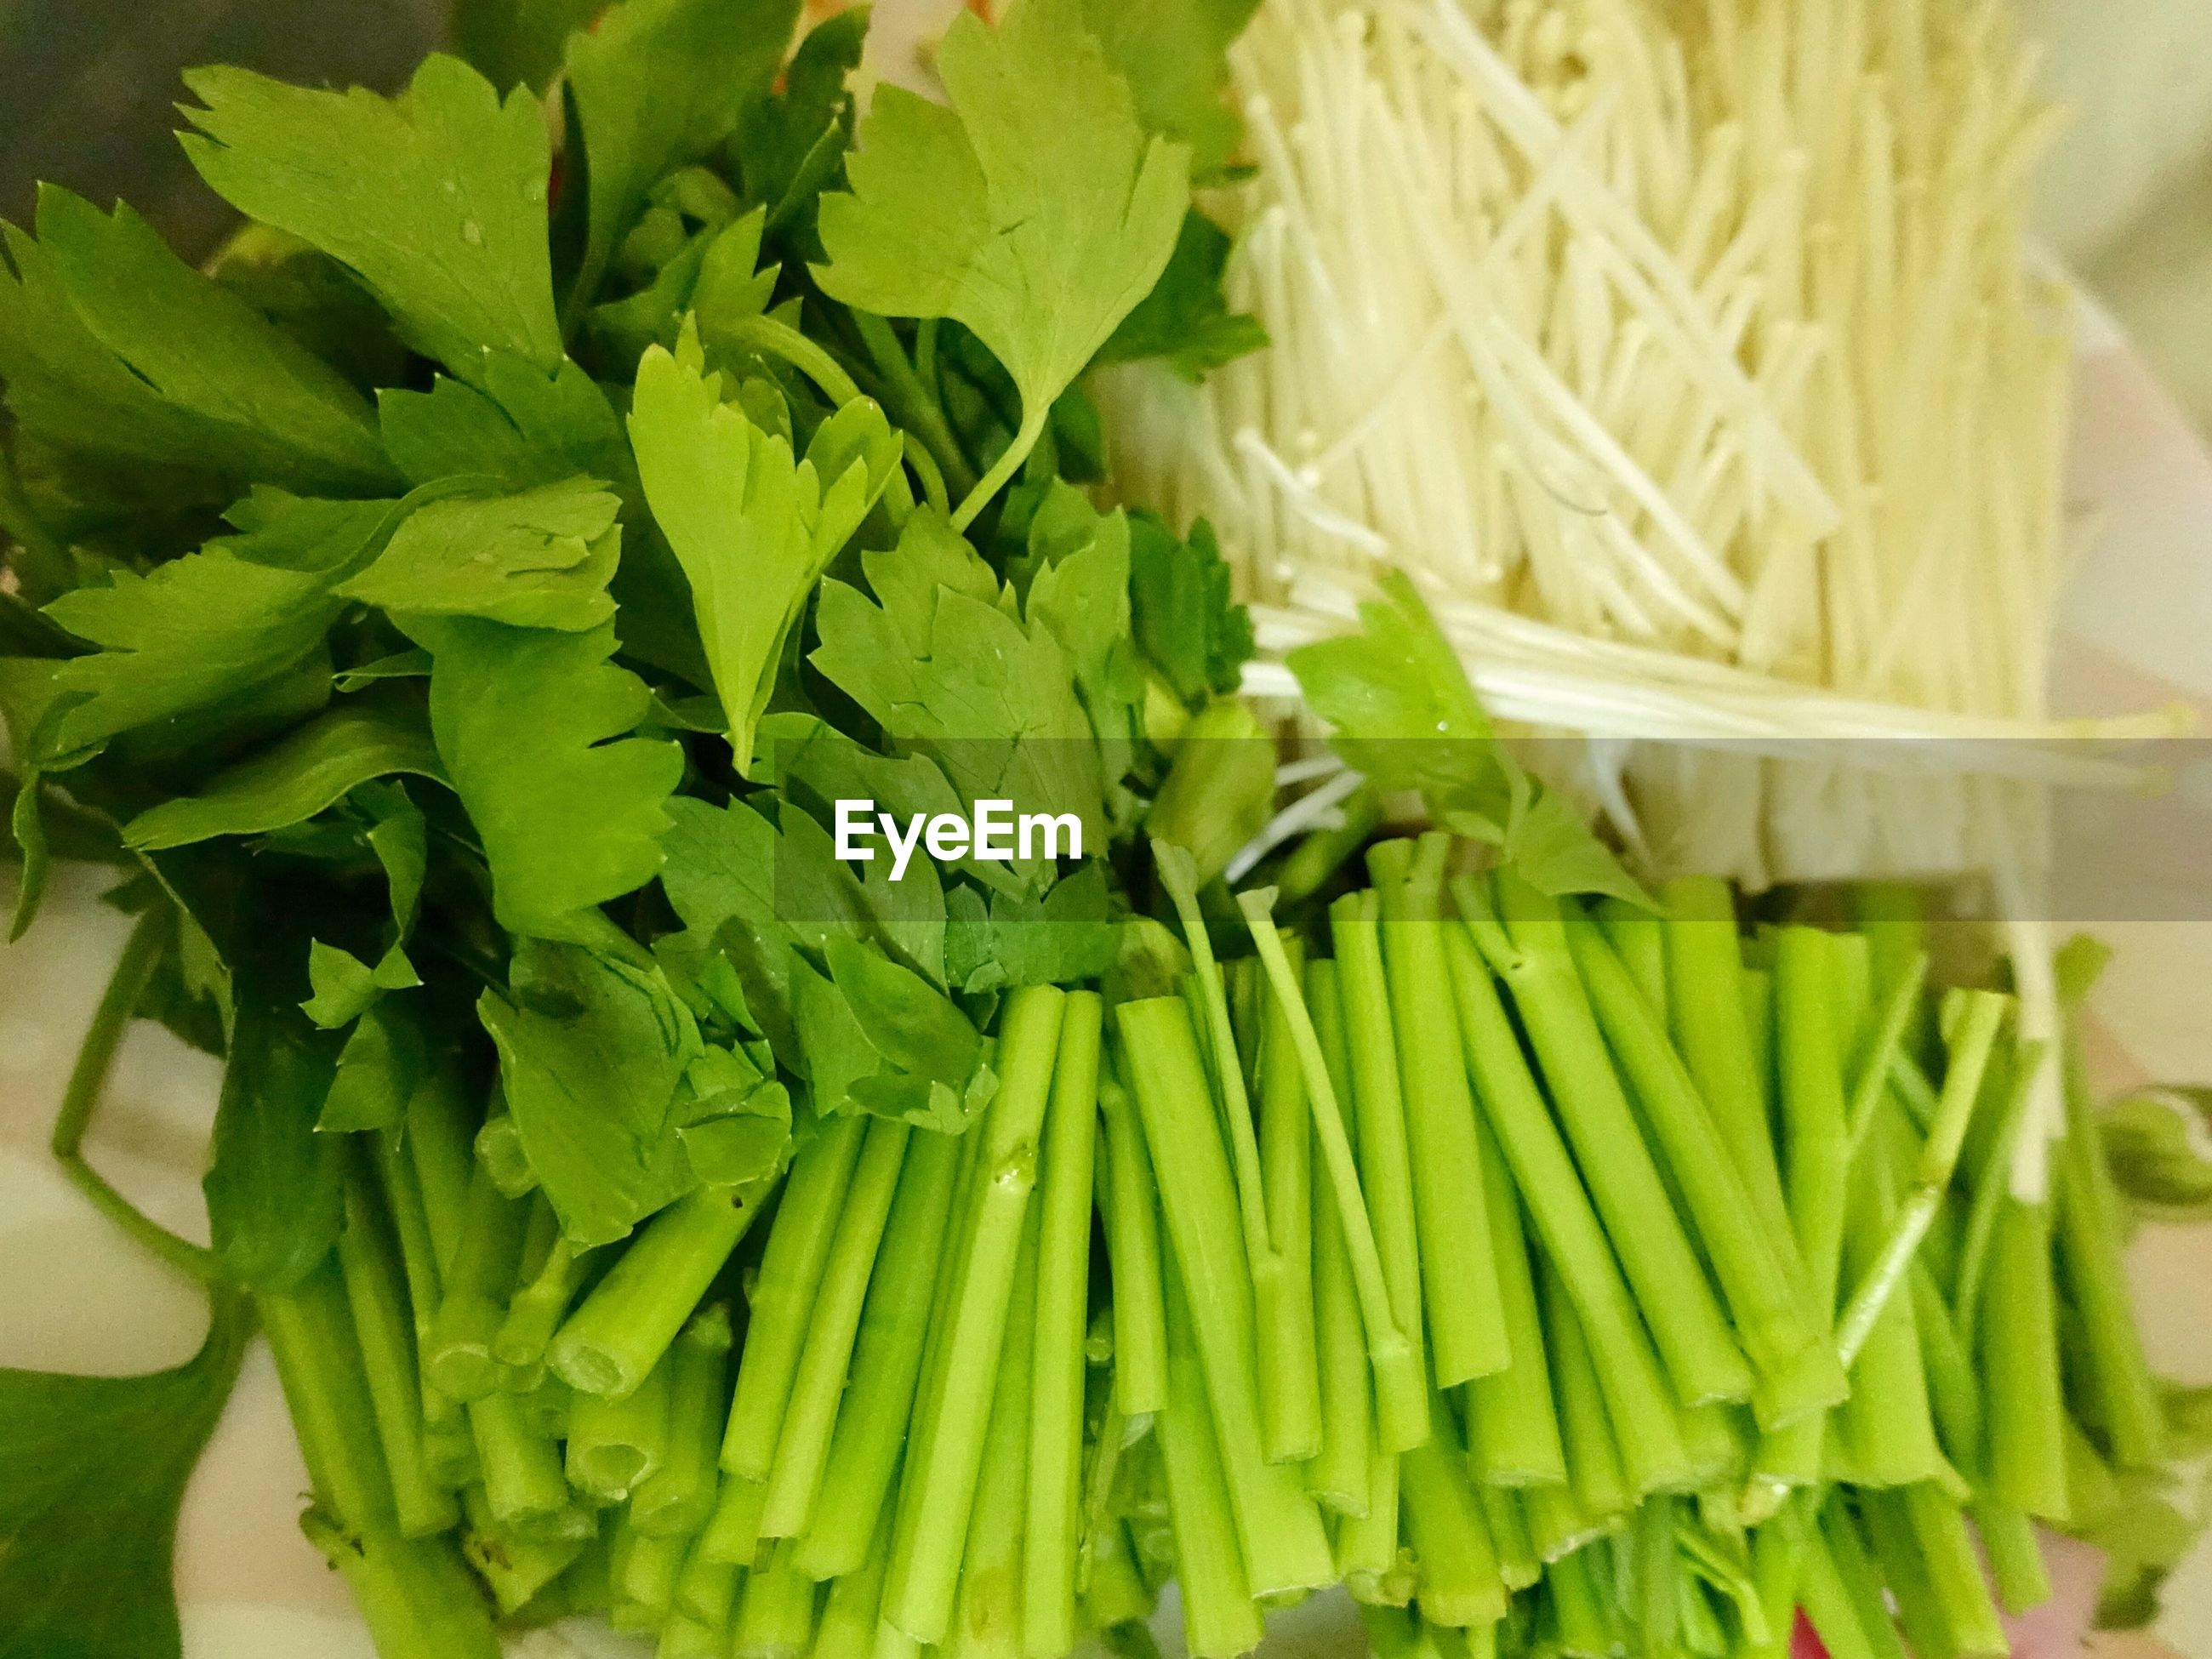 HIGH ANGLE VIEW OF VEGETABLES IN GREEN CONTAINER